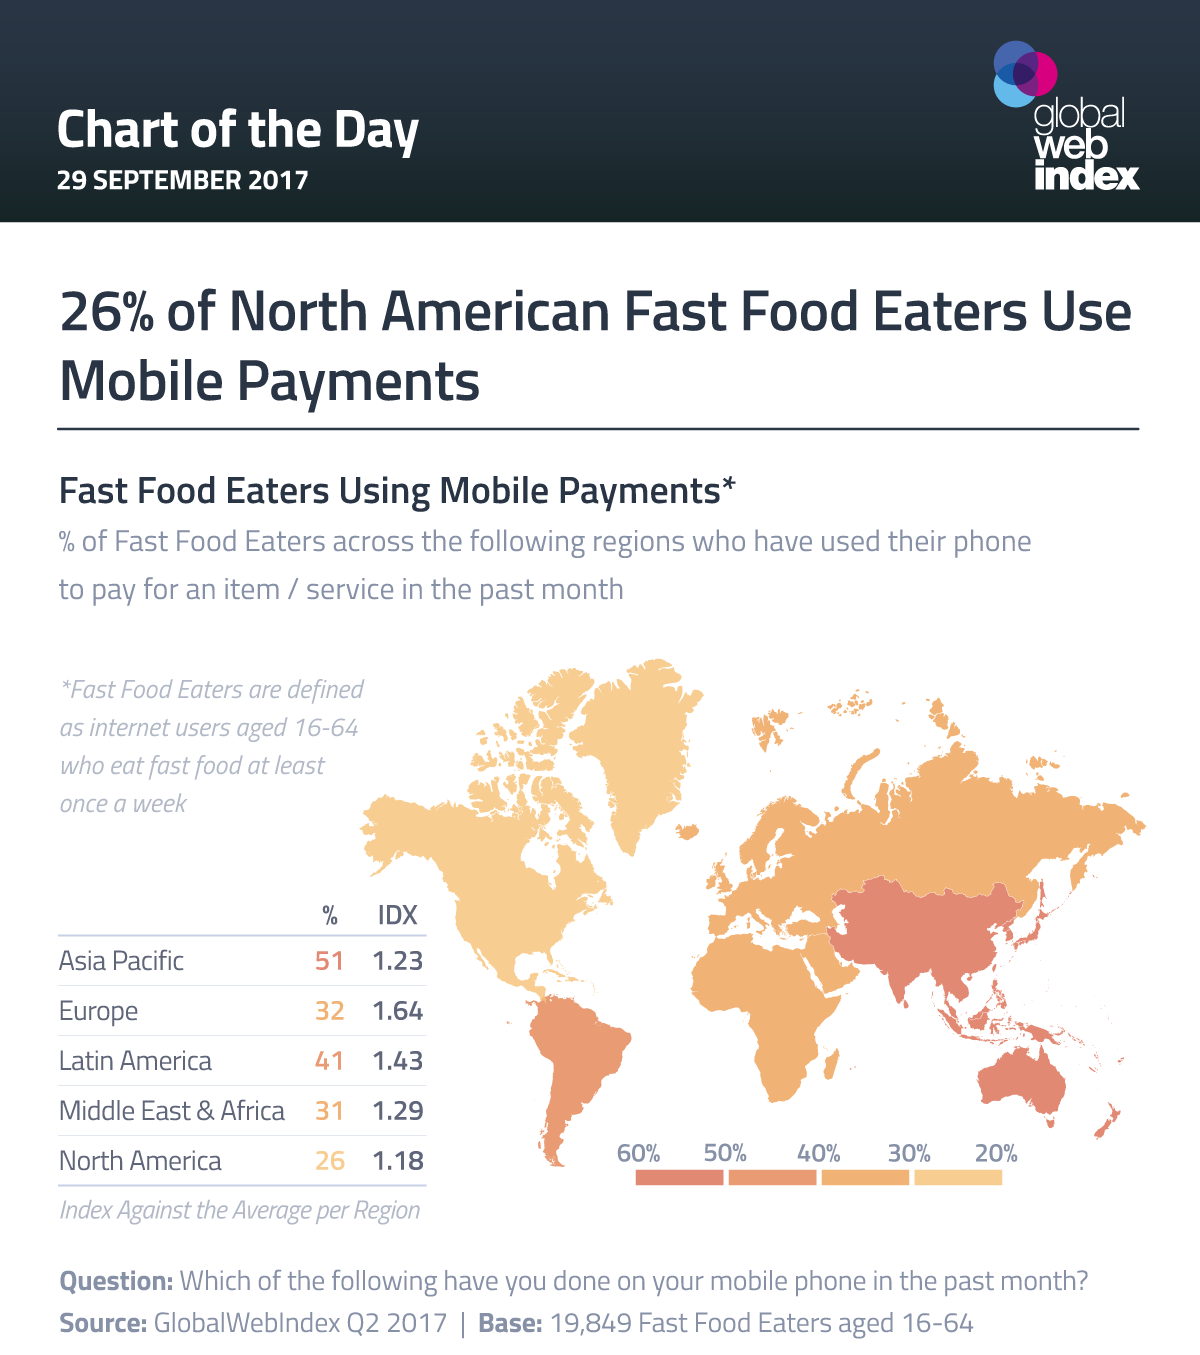 26% of North American Fast Food Eaters Use Mobile Payments